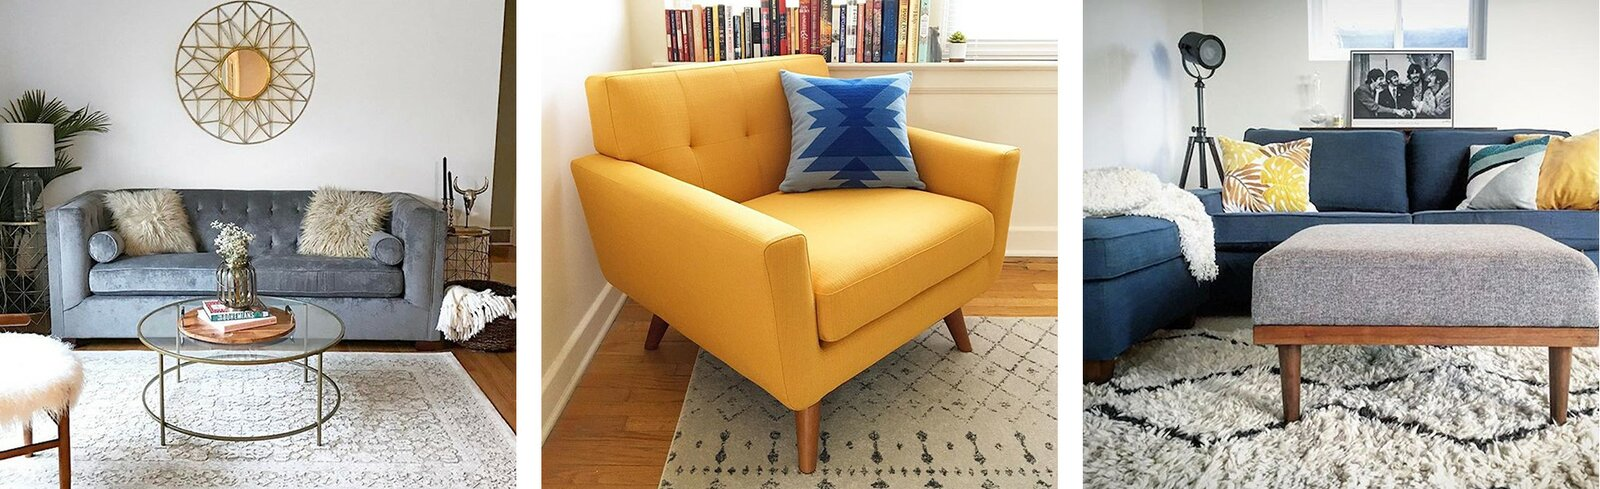 modern furniture and decor for your home and office - Home Modern Furniture